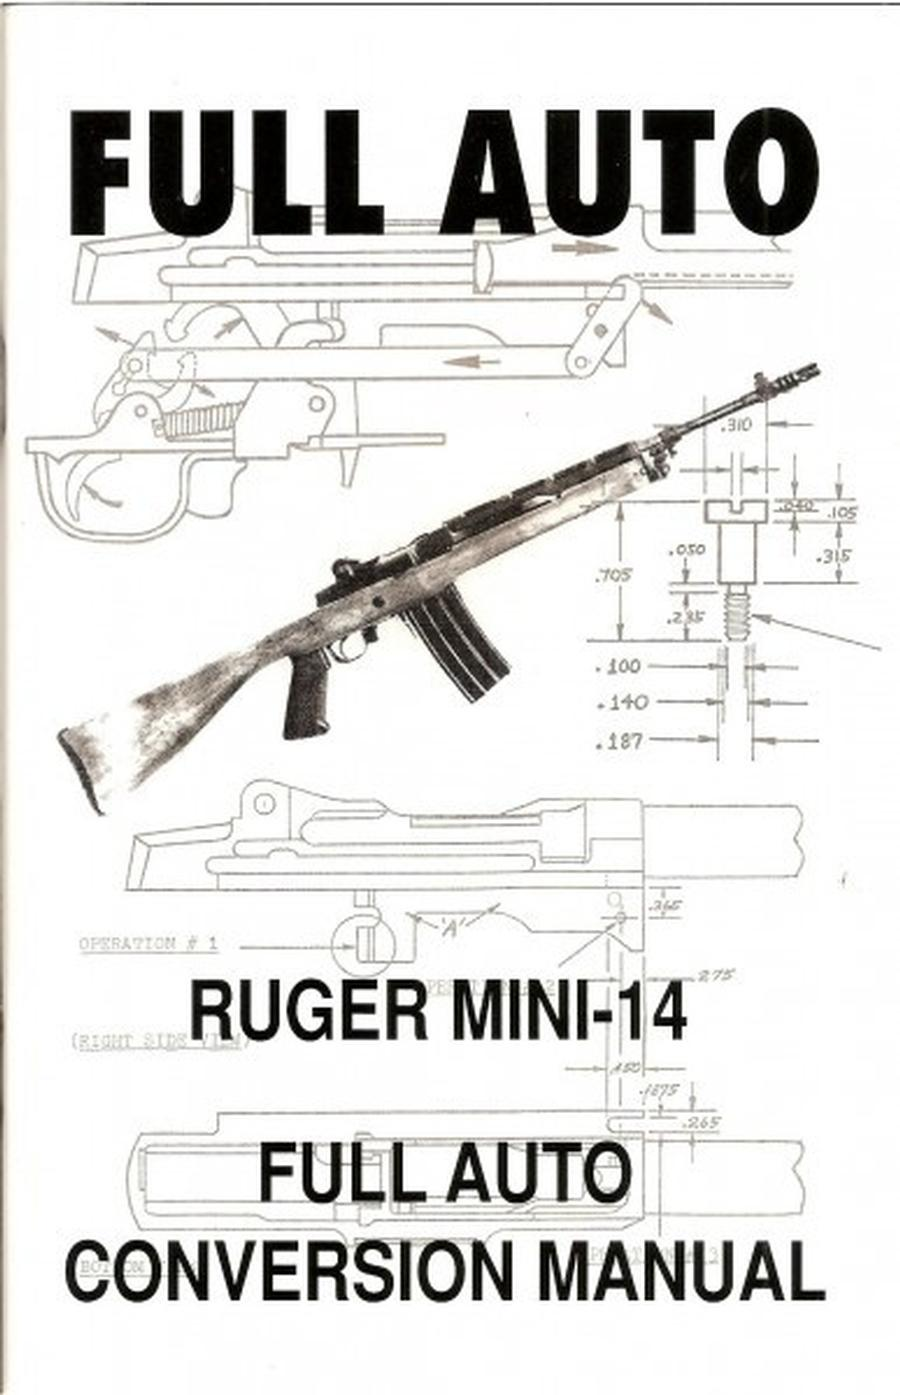 Mini 14 Full Auto Conversion Manuals 20 Books For Sale at